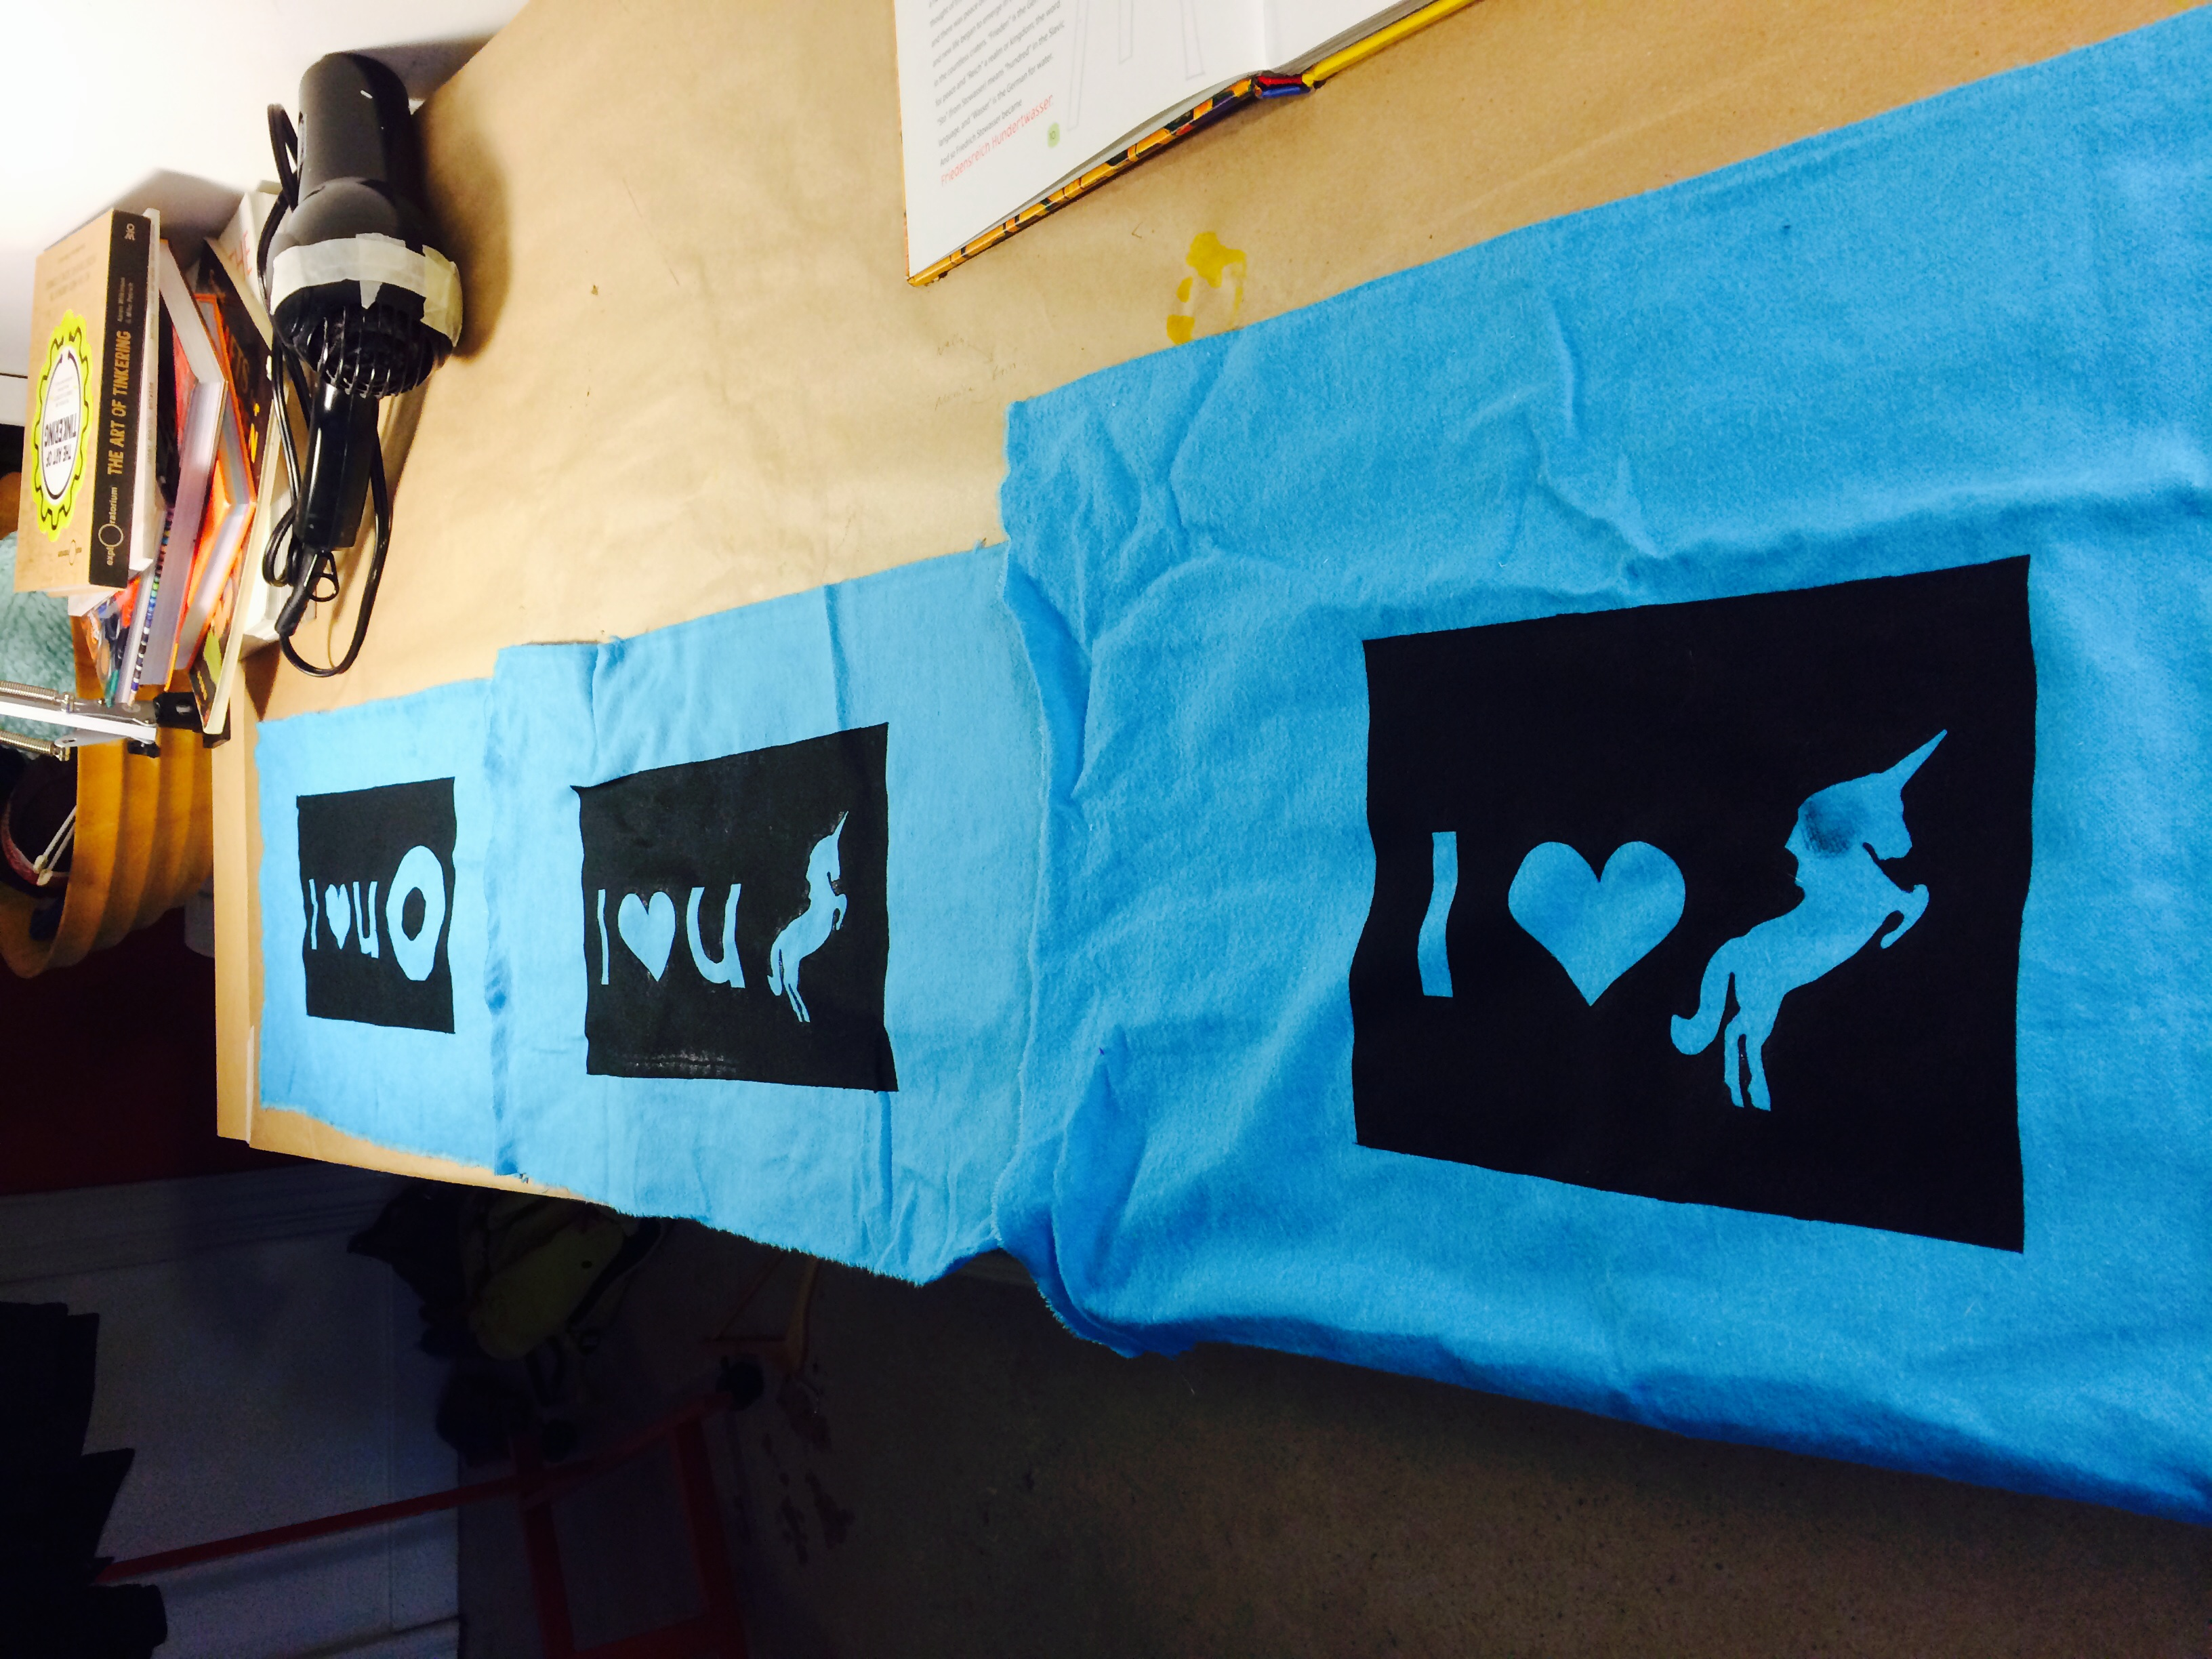 And inspired our focus for the next Open Studio: screen printing!!